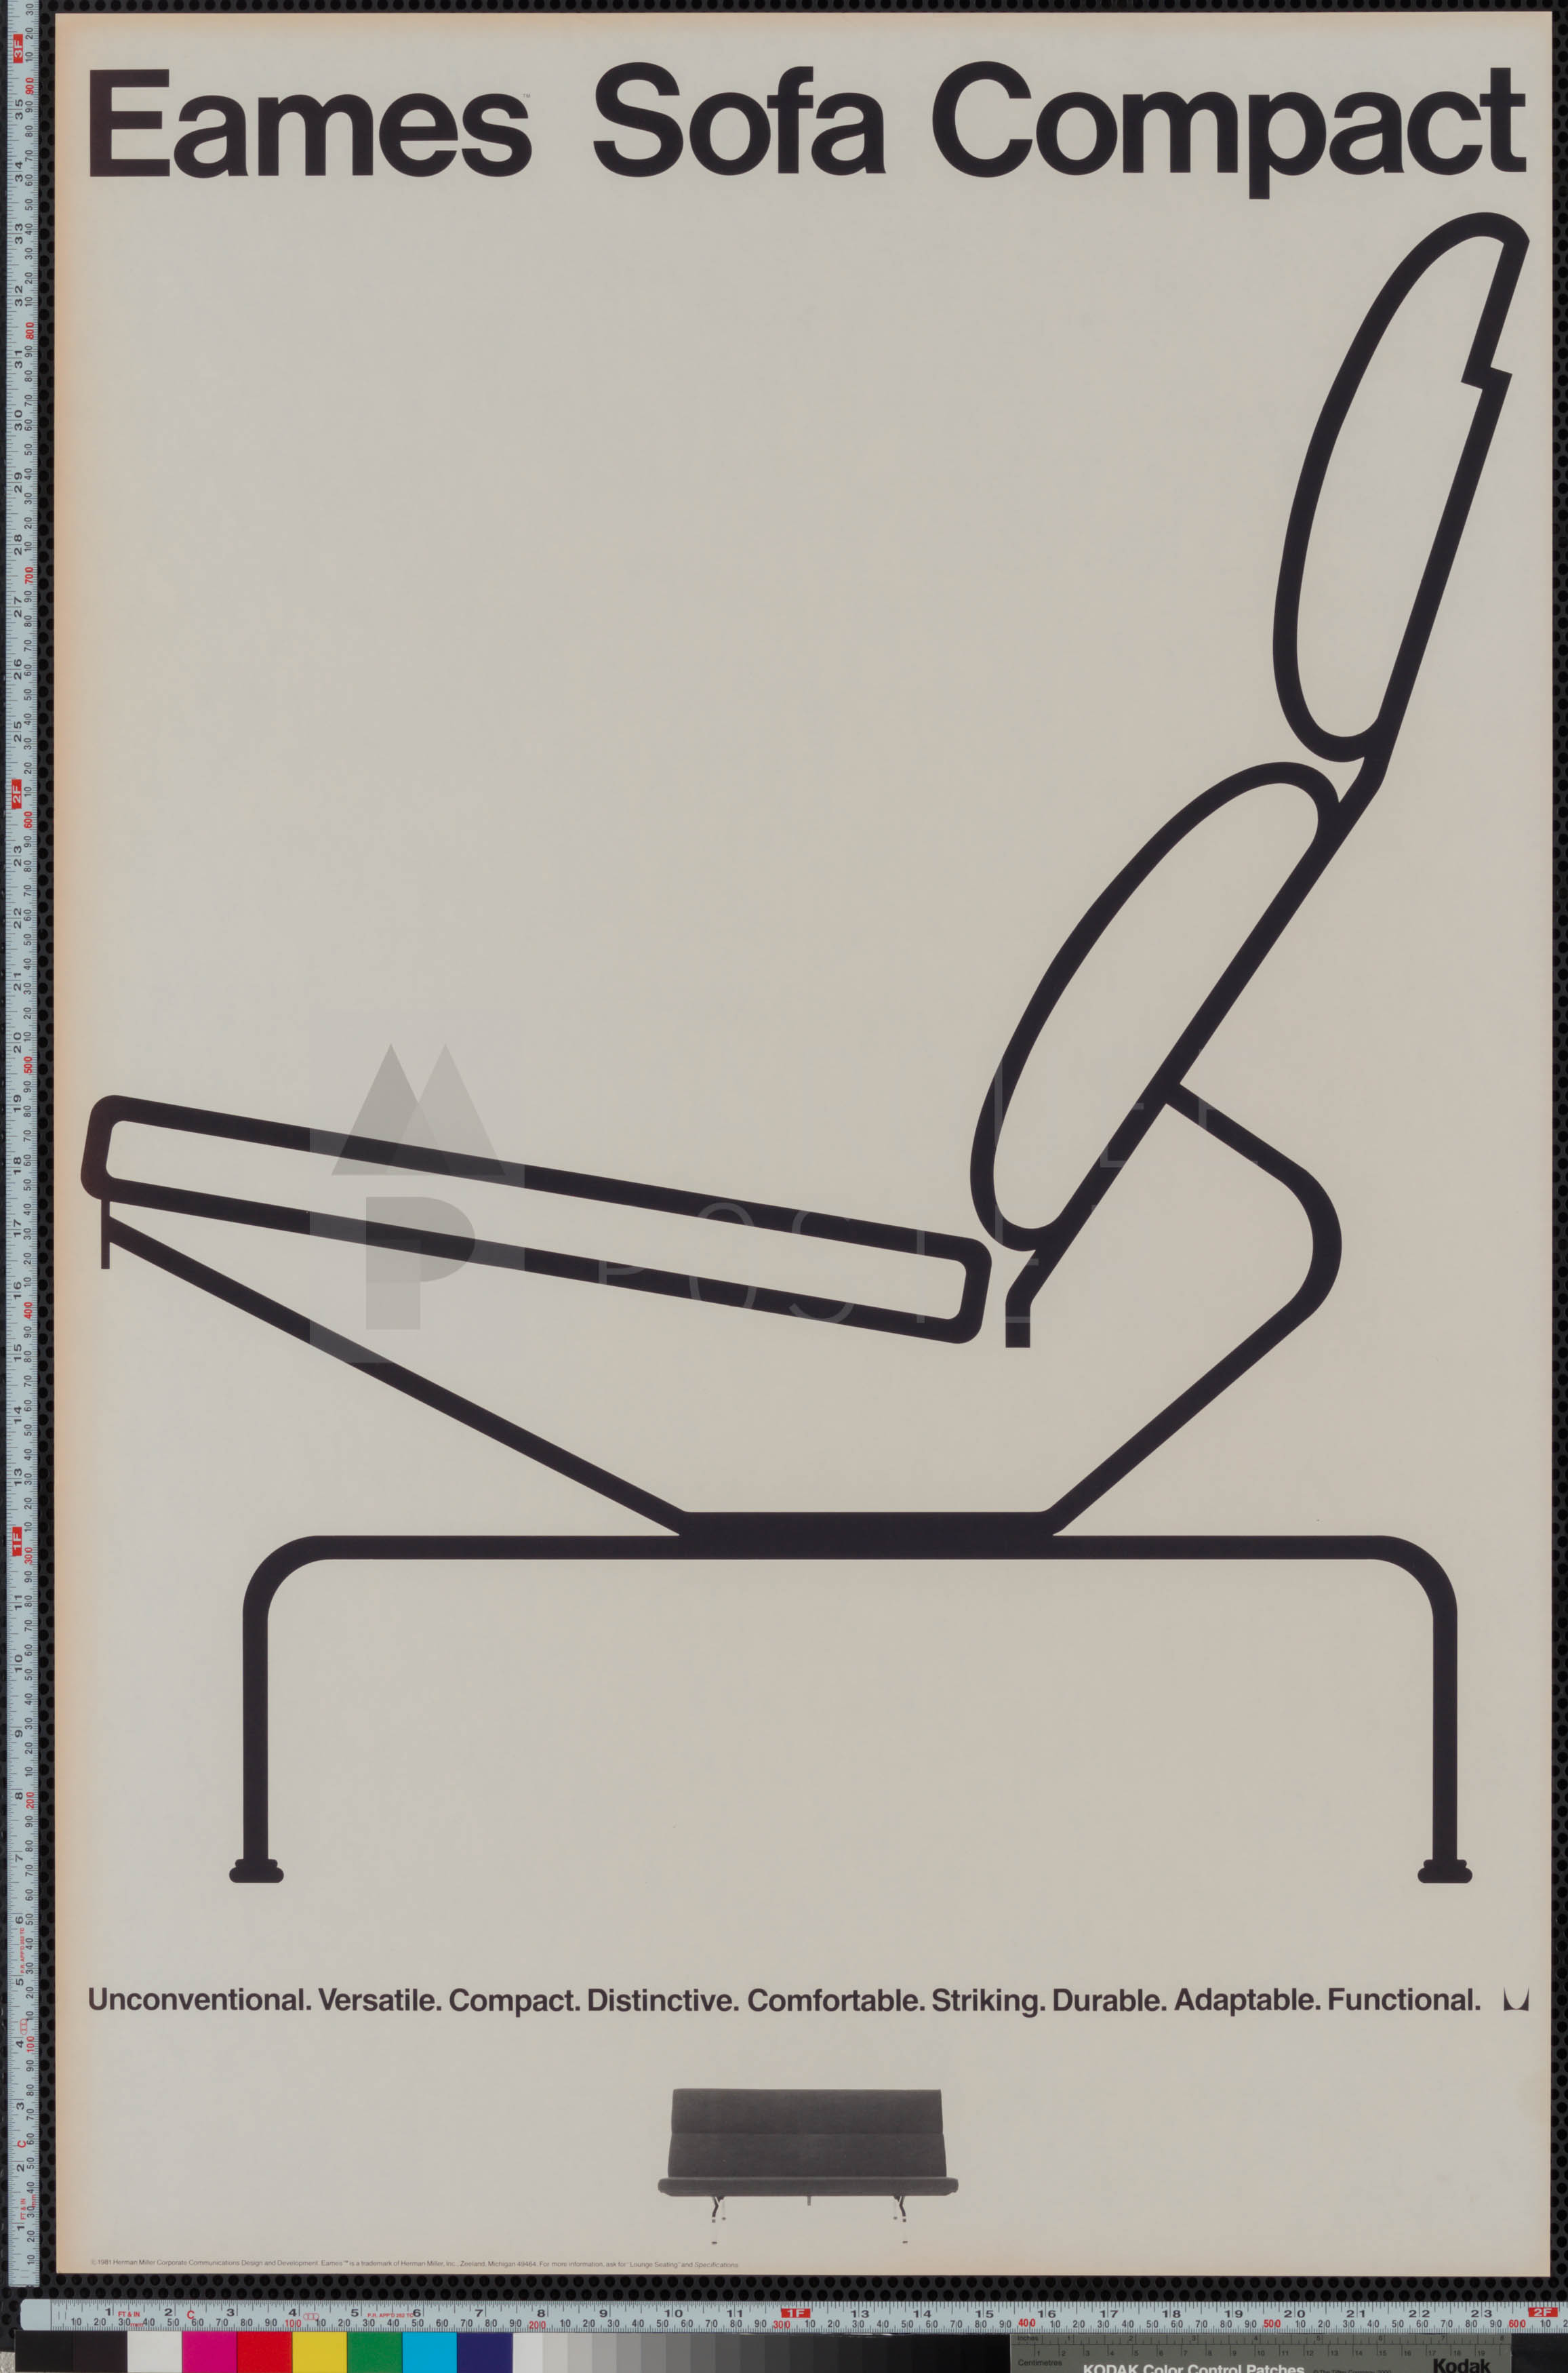 49-eames-sofa-compact-us-arch-d-1981-02